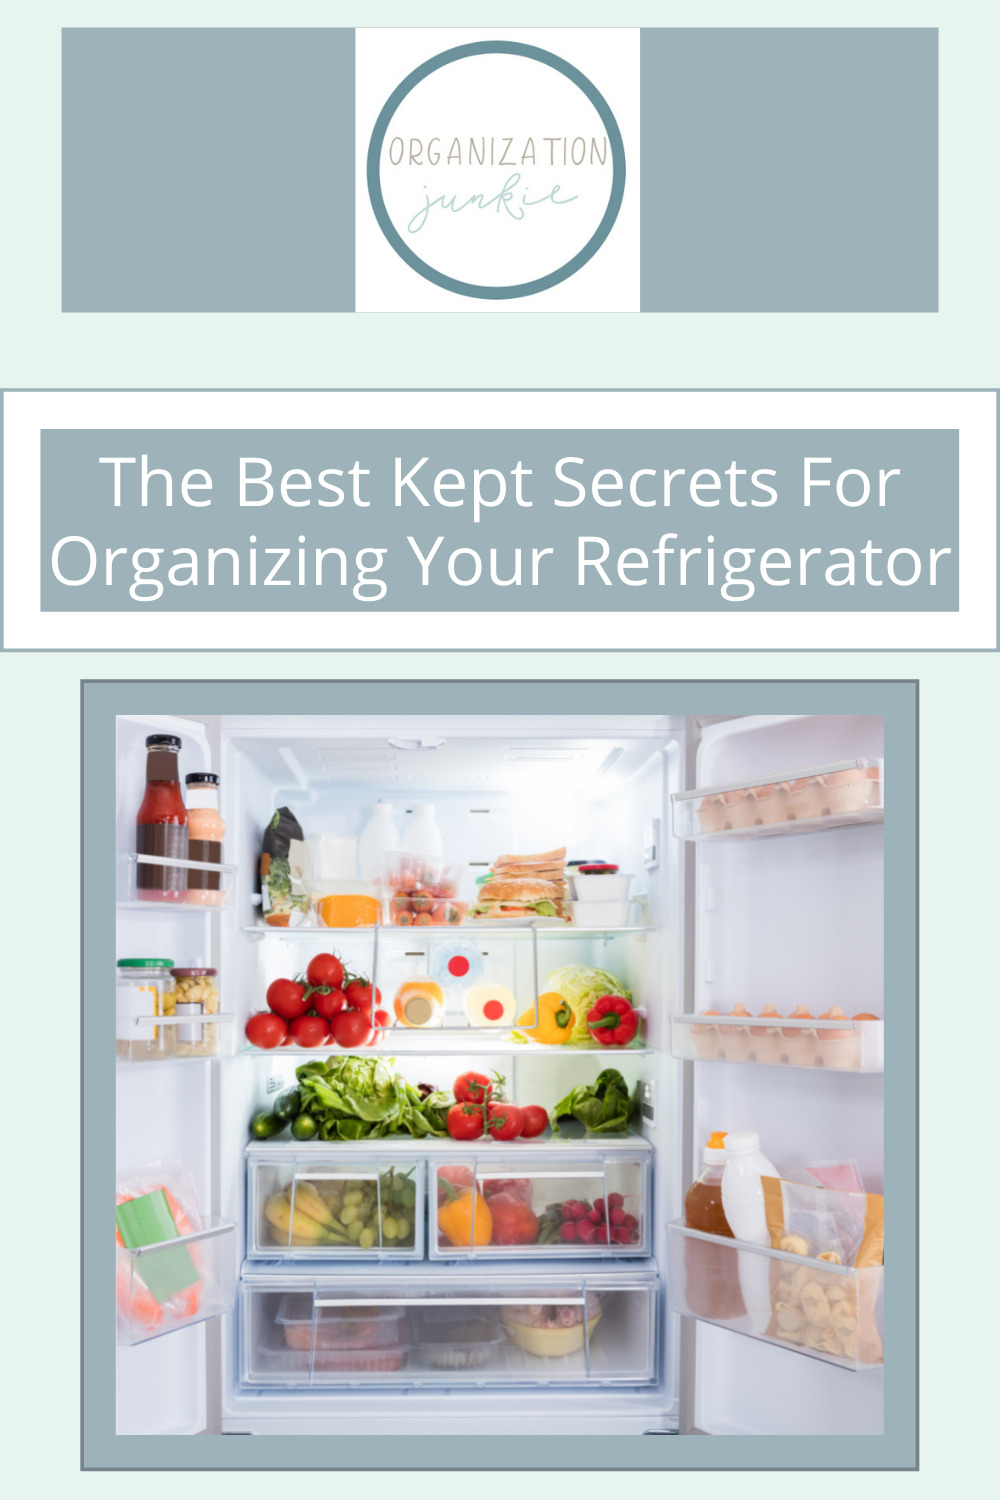 Organizationjunkie.com is stacked with creative ideas for keeping a clean and organized space. Find out how you can wipe out clutter in an instant. These clever ideas will have your fridge totally organized in no time!